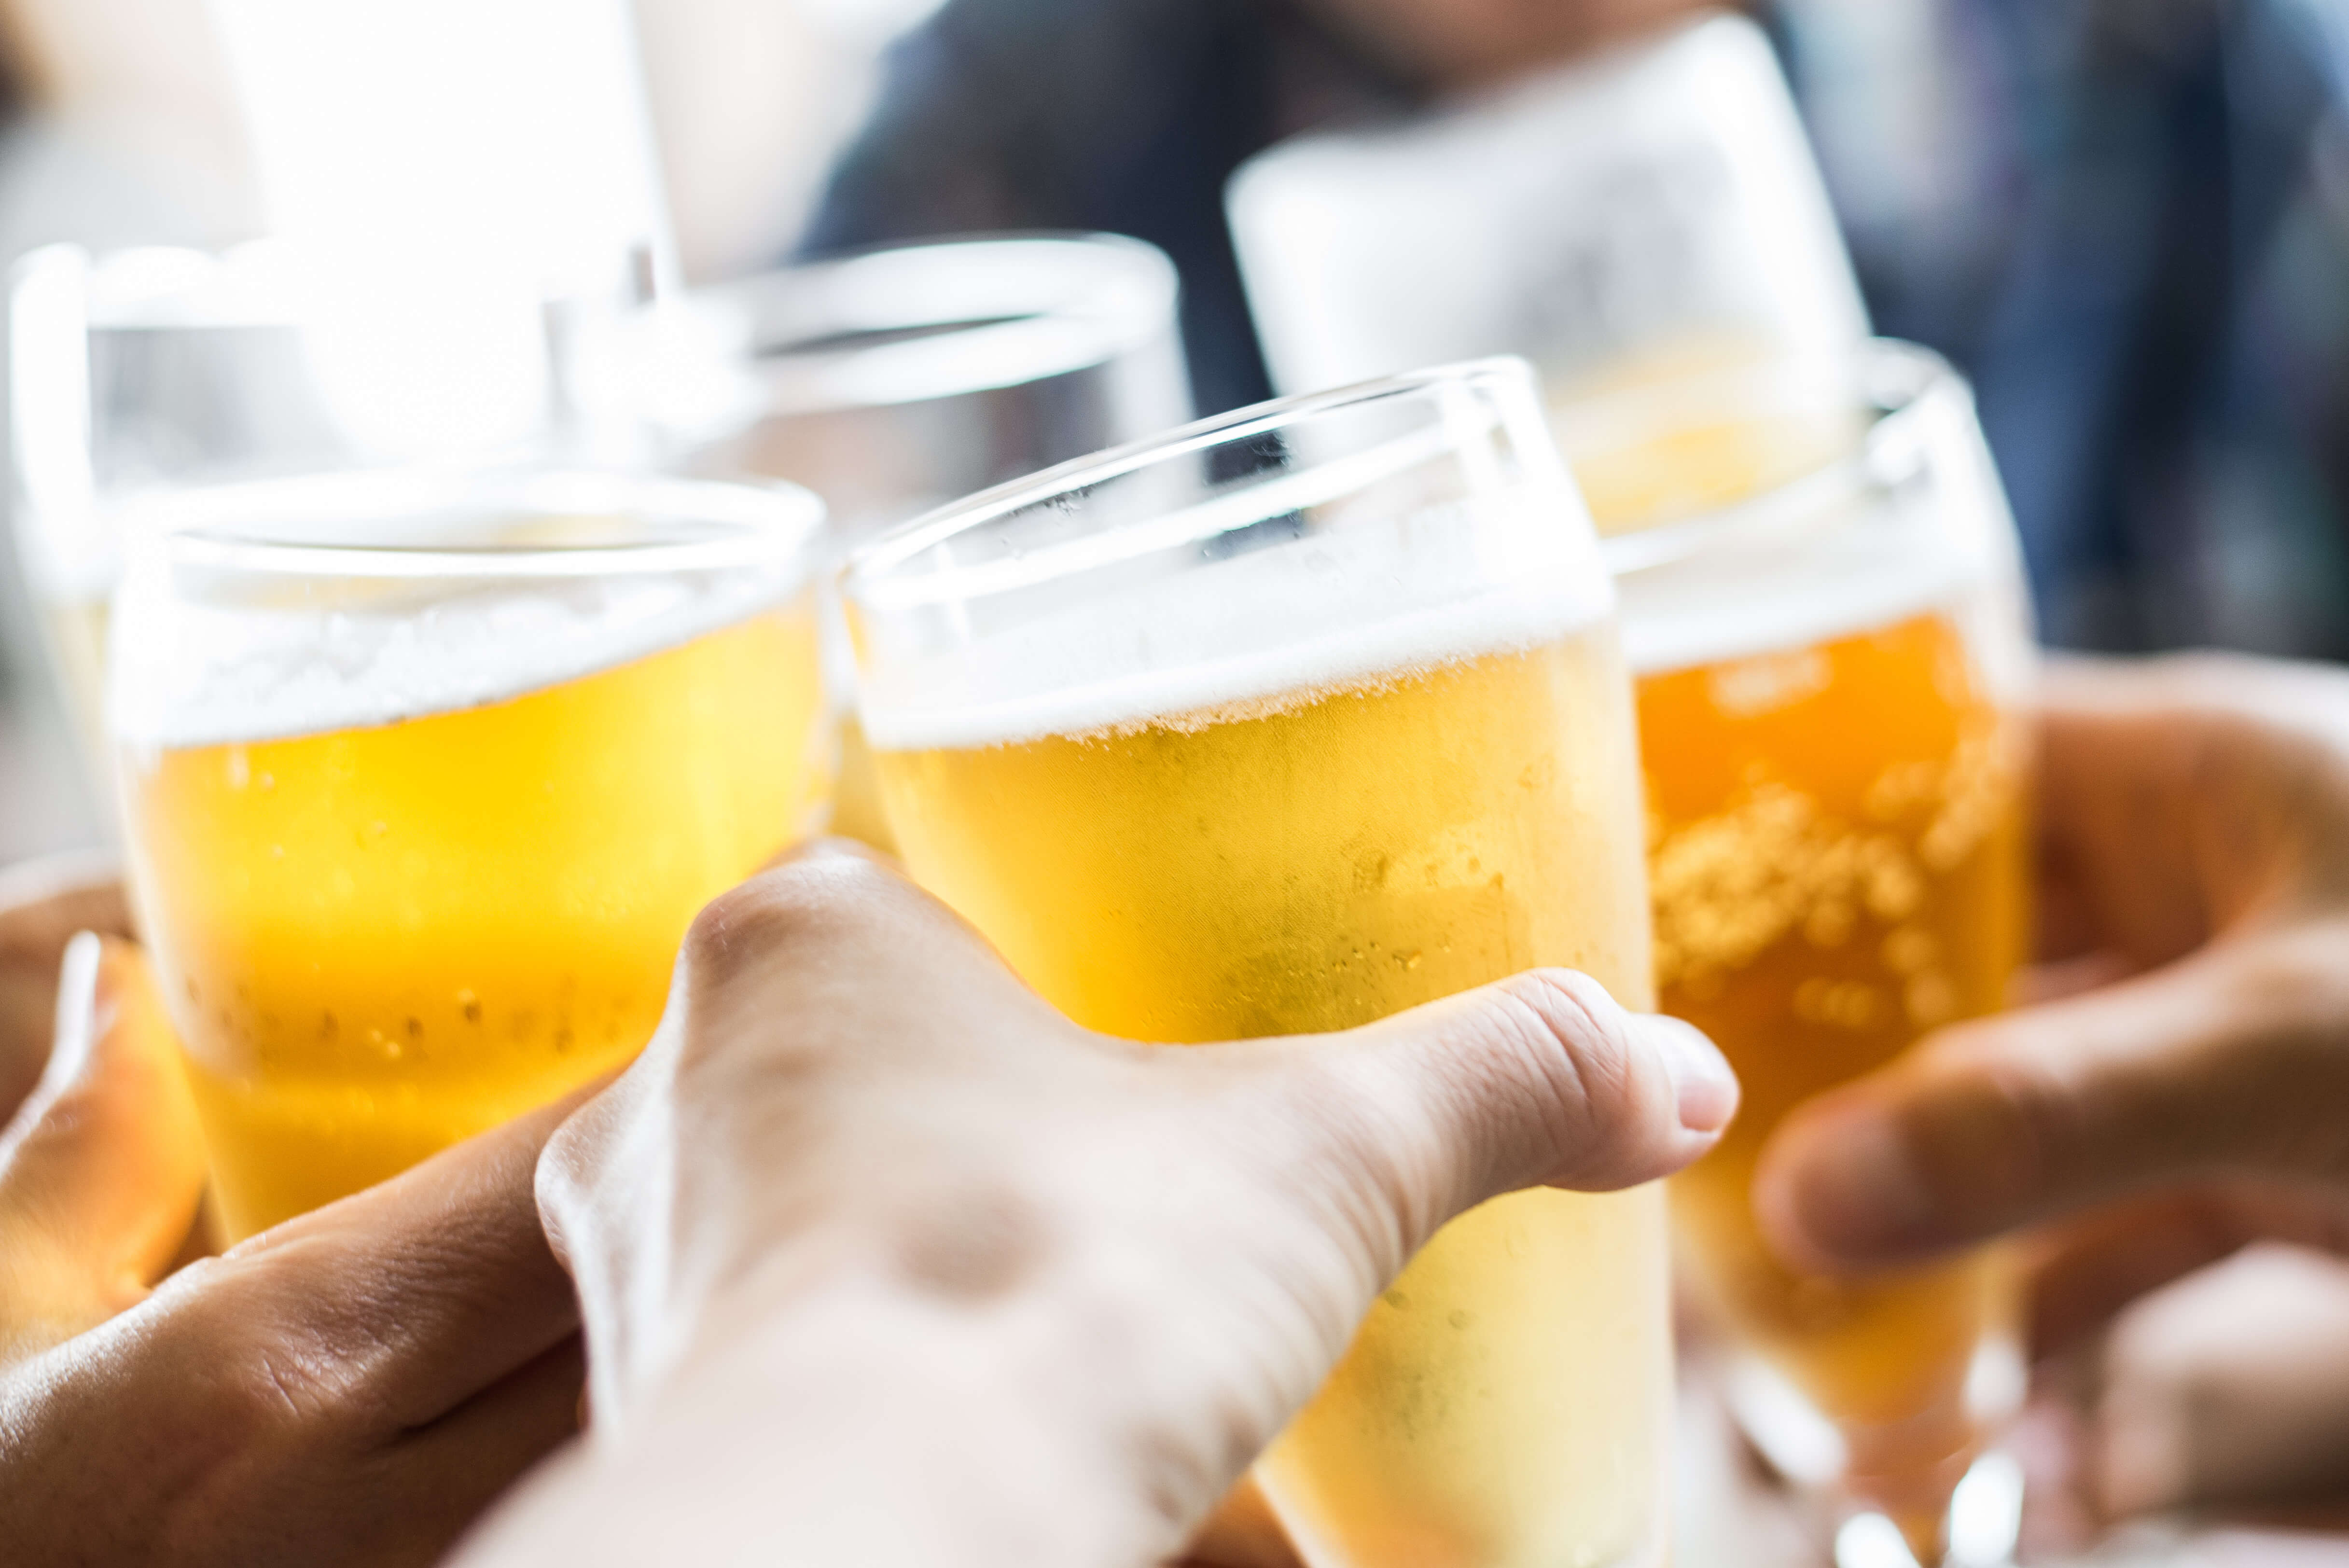 Craft beer is becoming a staple part of food and beverage culture.